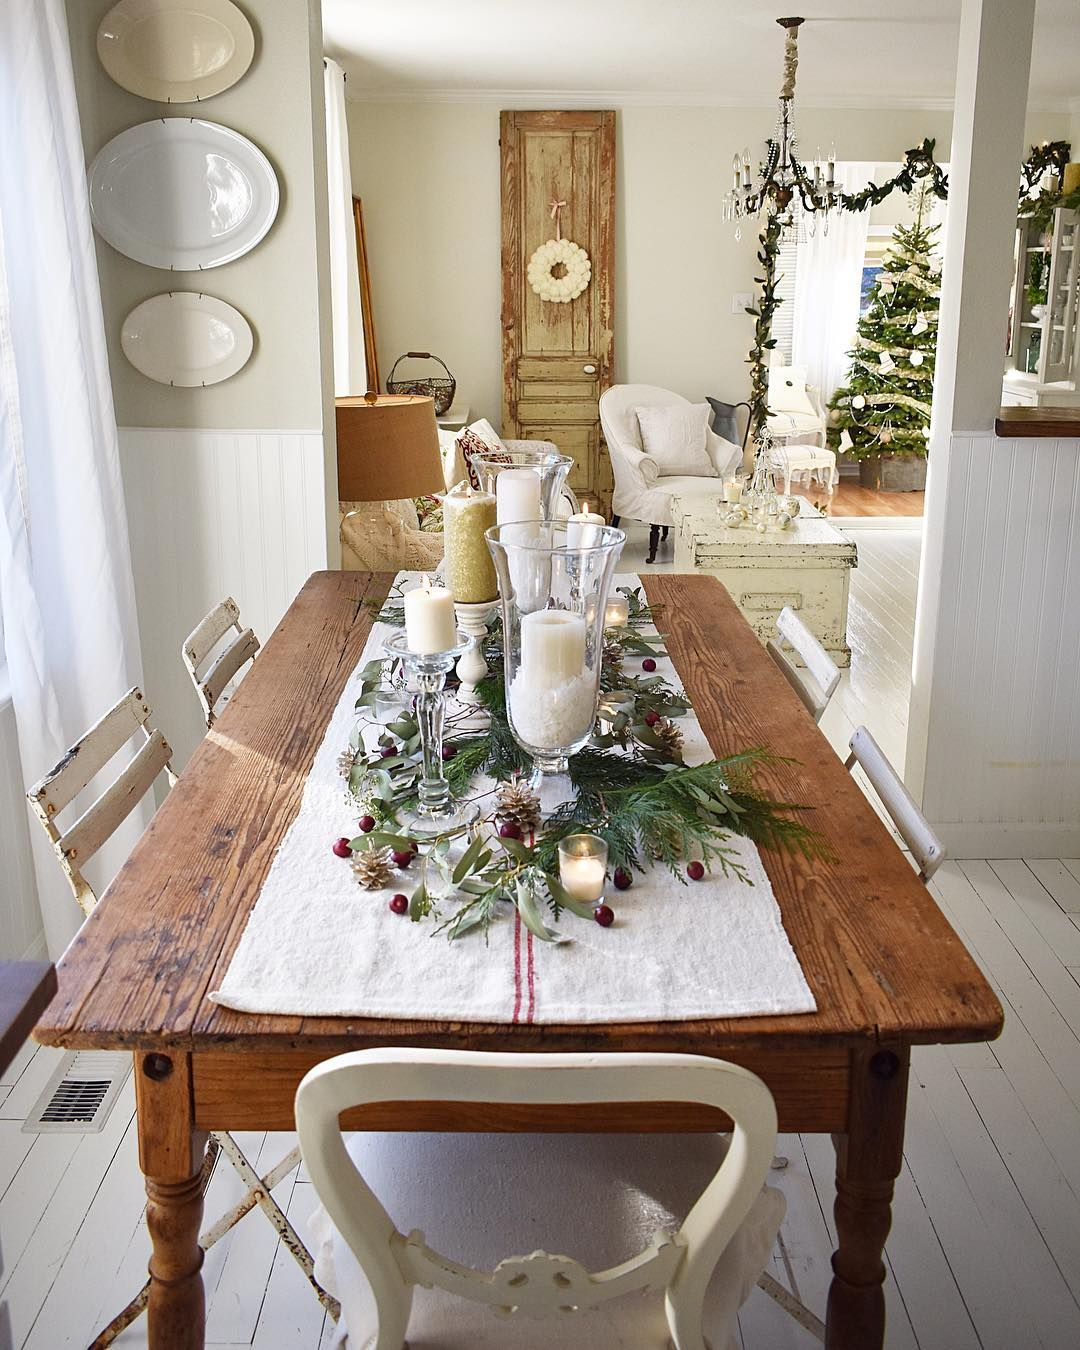 75 Simple And Minimalist Dining Table Decor Ideas In 2020 Dining